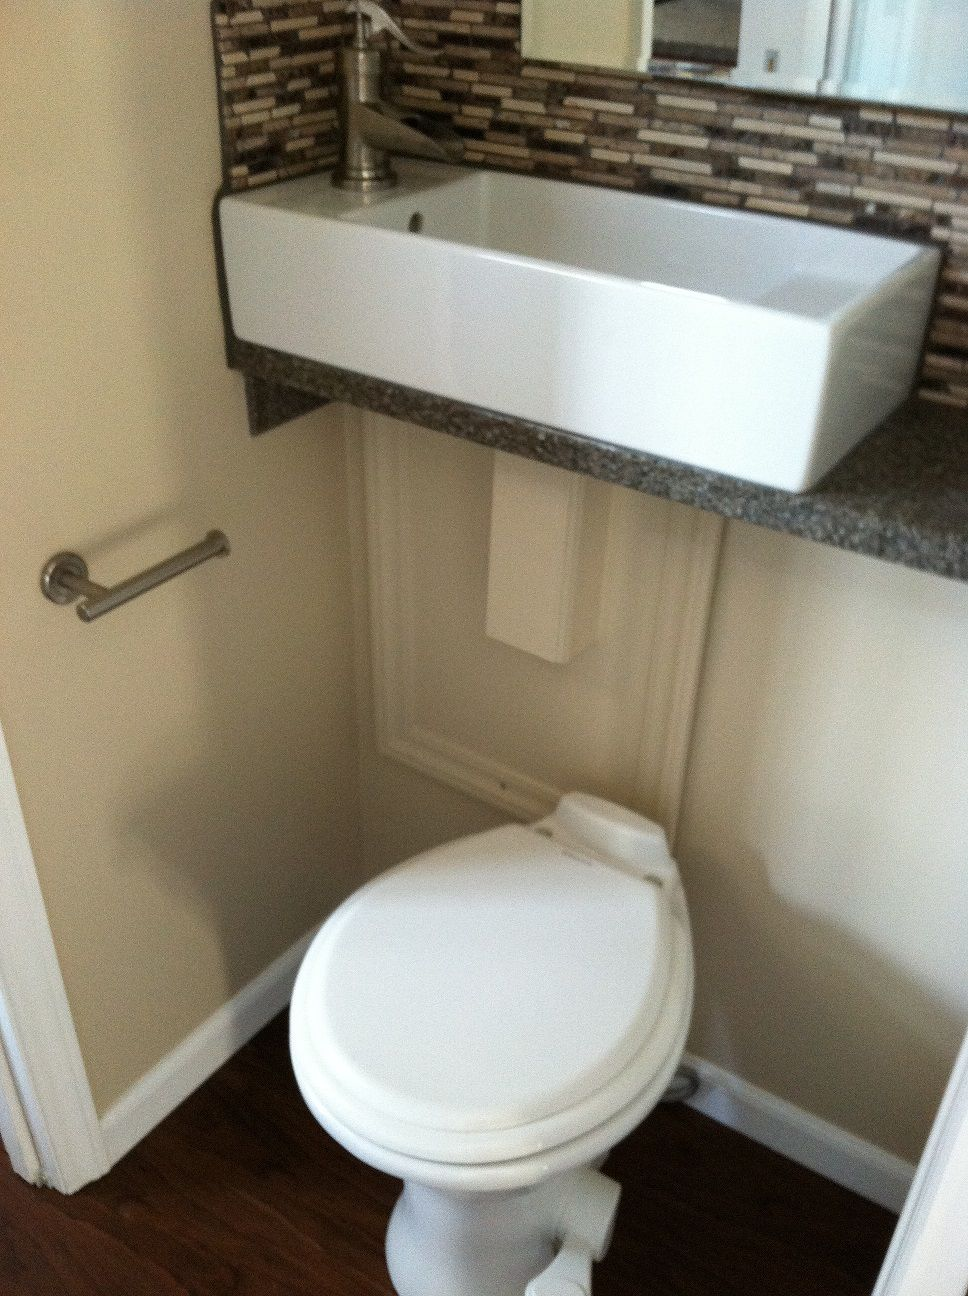 Super Easy to Build Tiny House Plans  Tiny House BathroomCompact. Love this cute little sink   Pool Side Pleasures   Pinterest